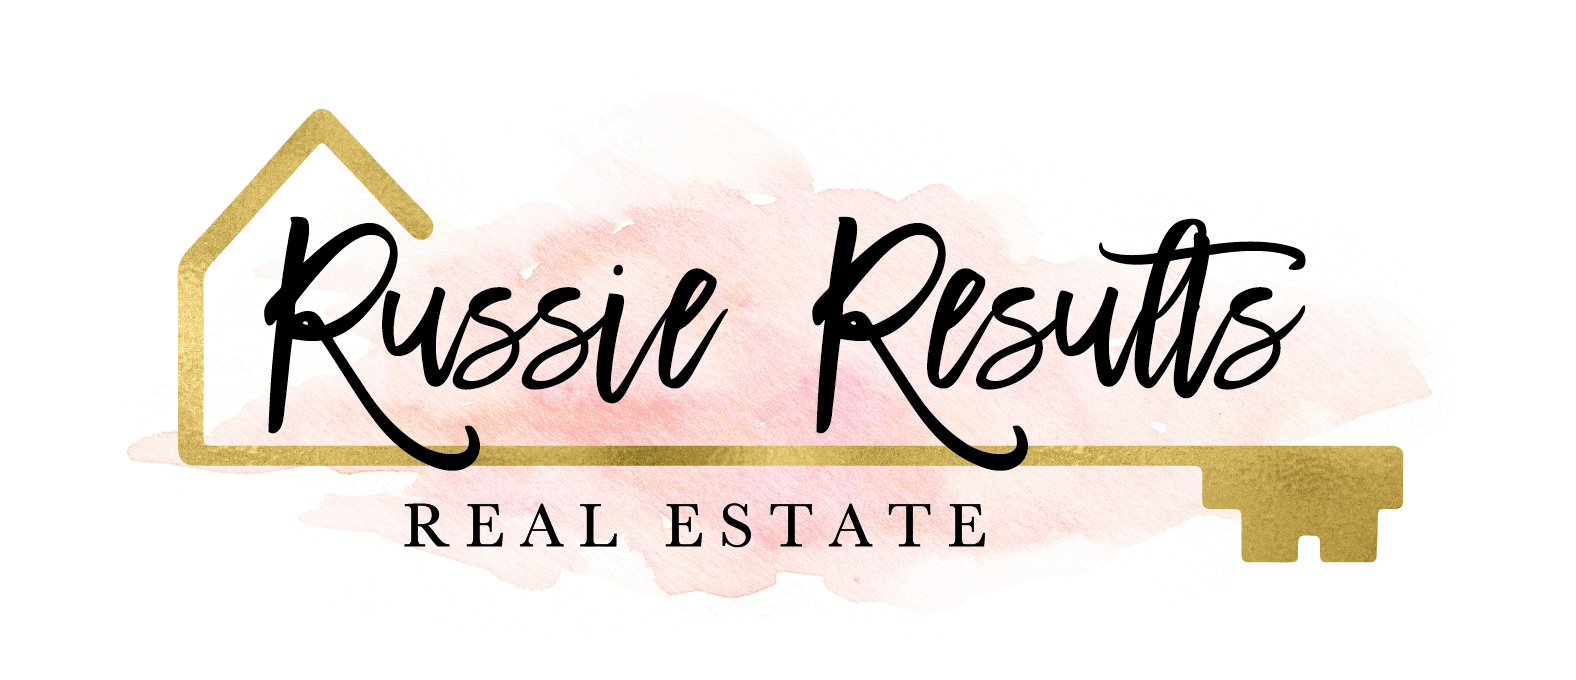 Russie Results Real Estate